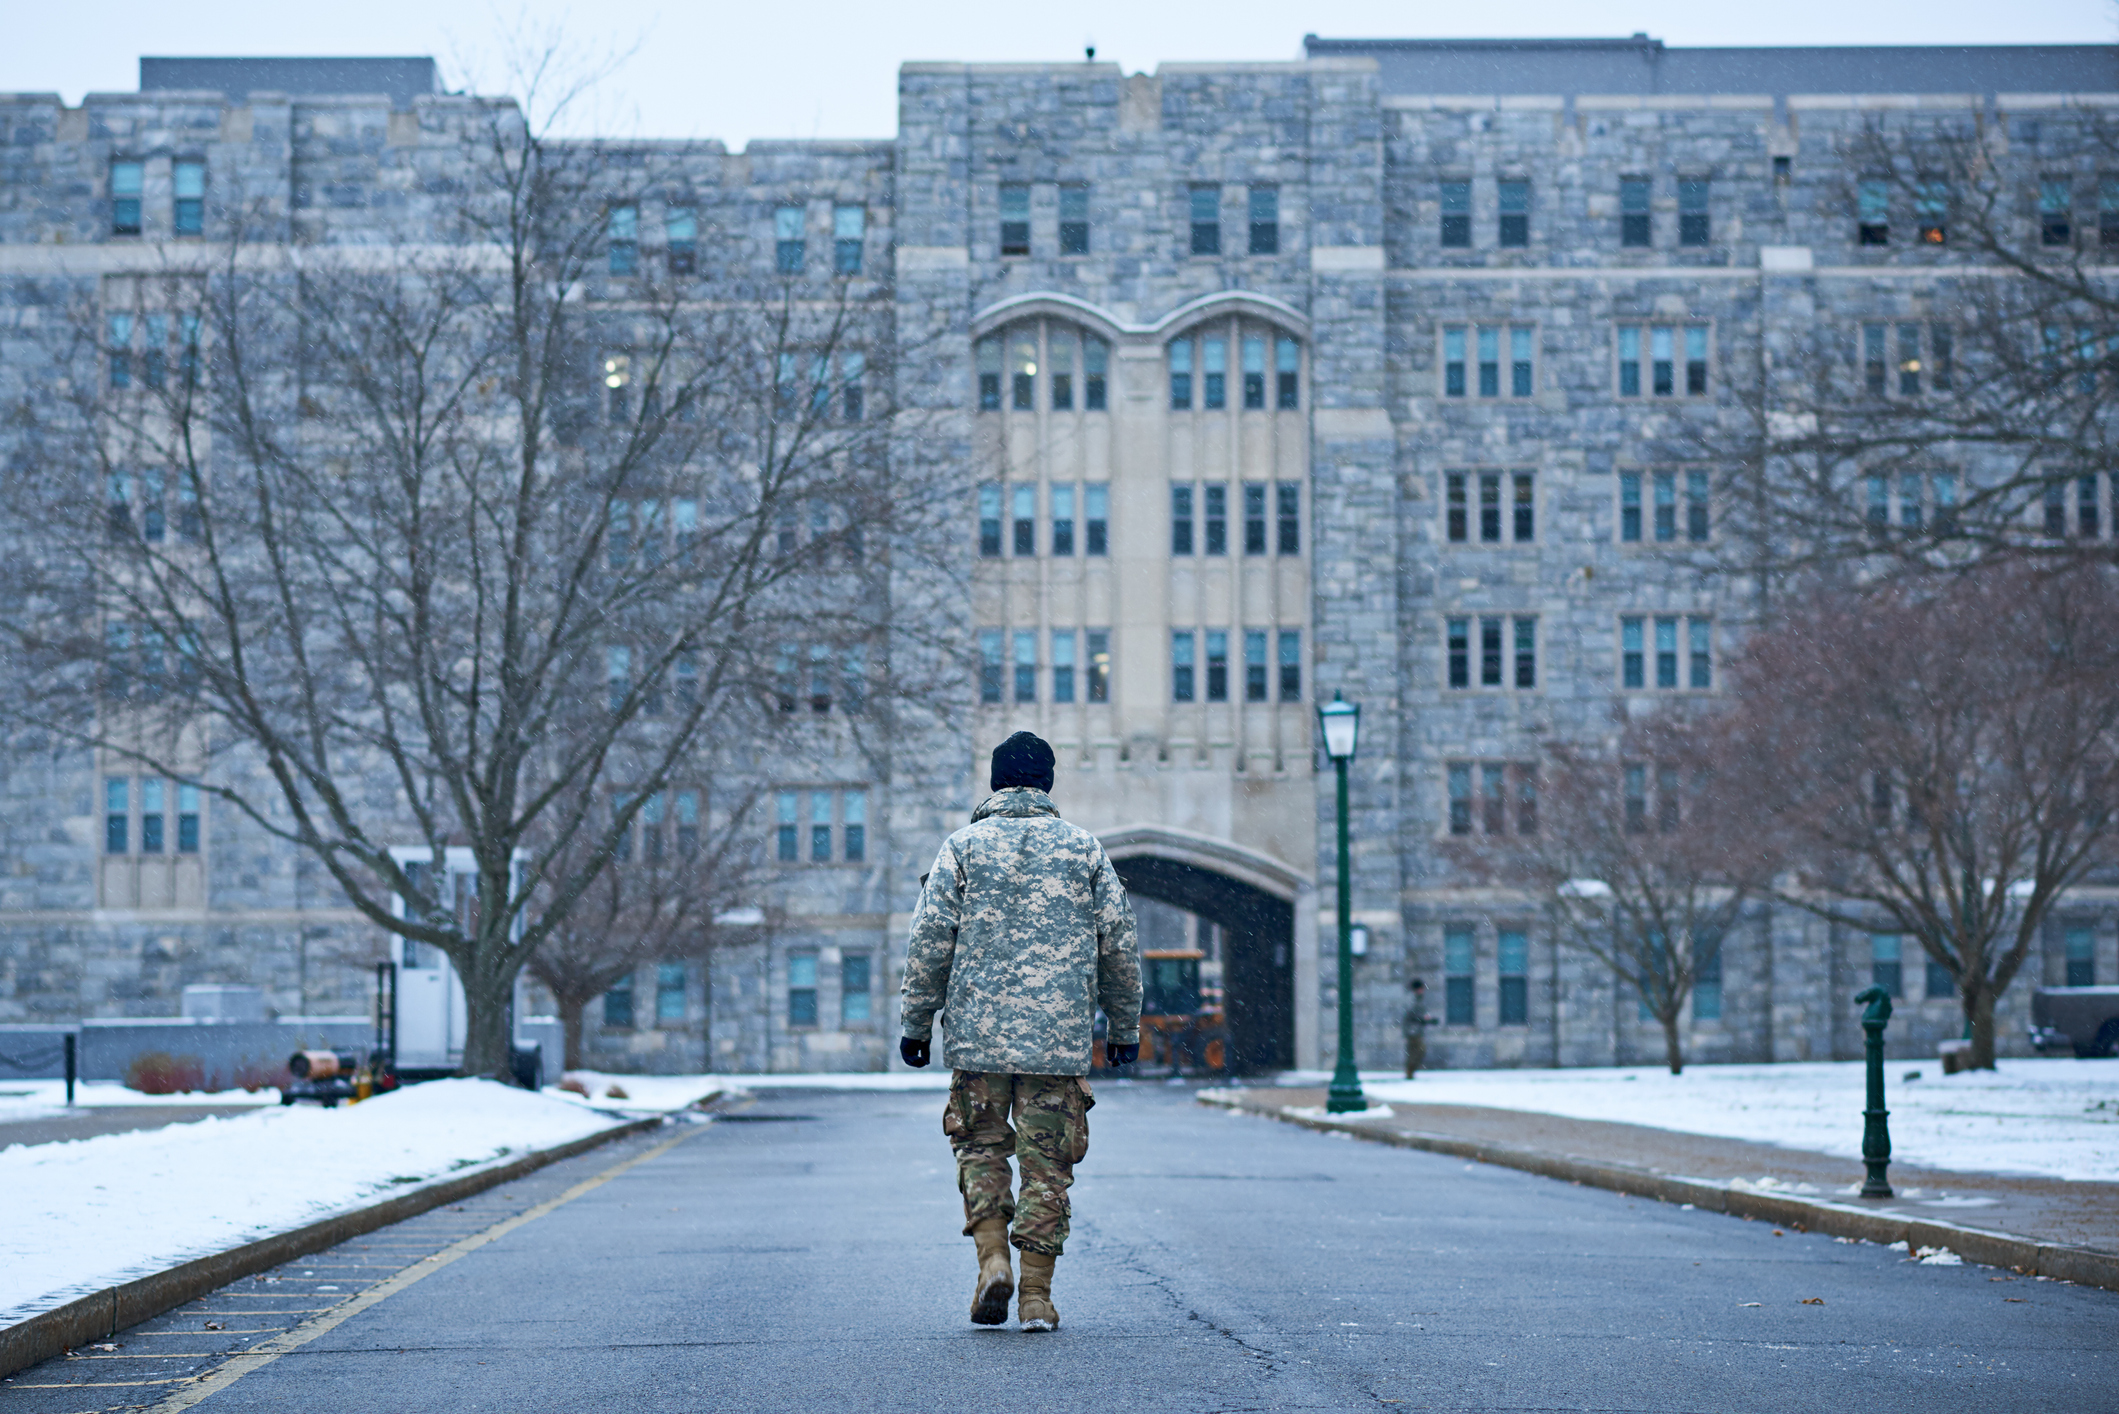 Studying for a law career after military service